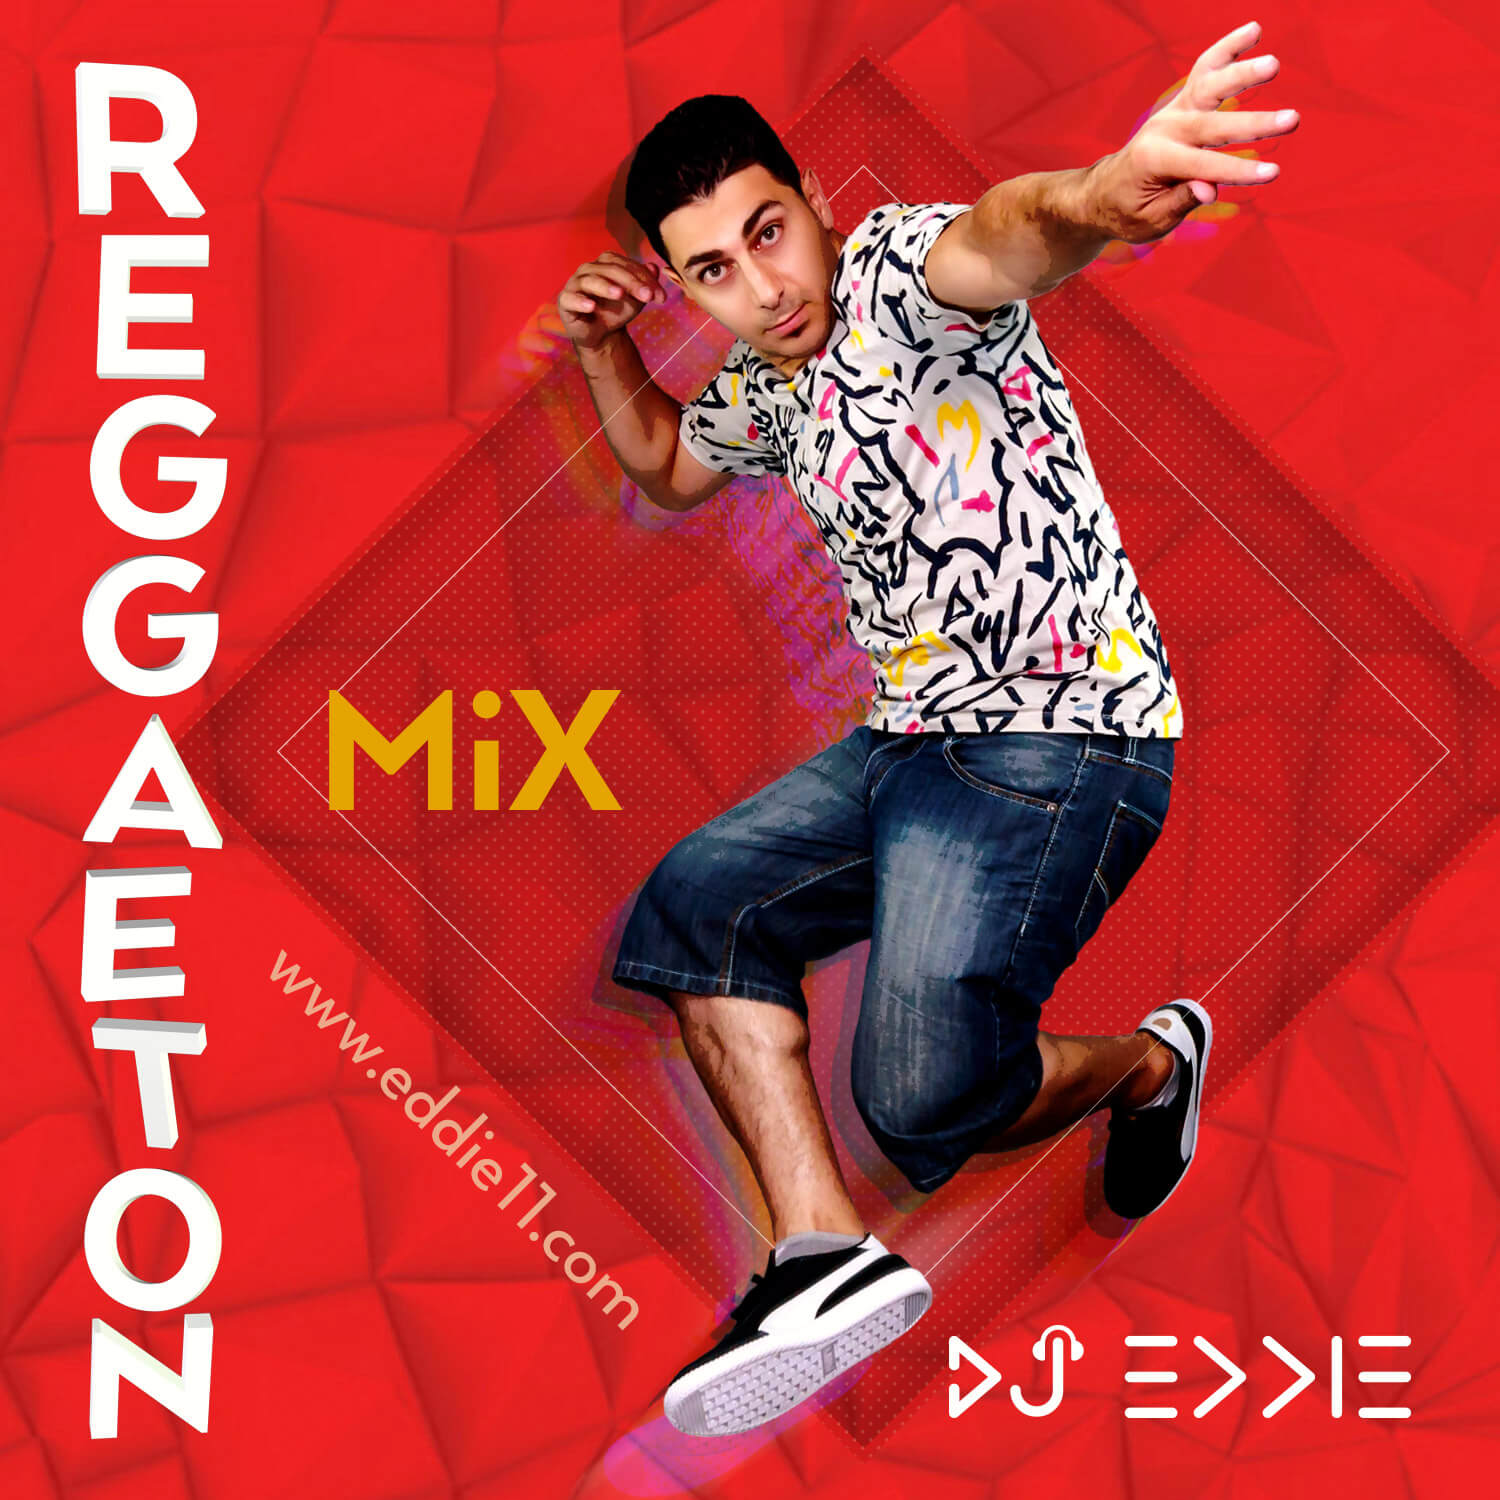 DJ Eddie Reggaeton Mix Best Latino Hit Music & Hottest Spanish Songs